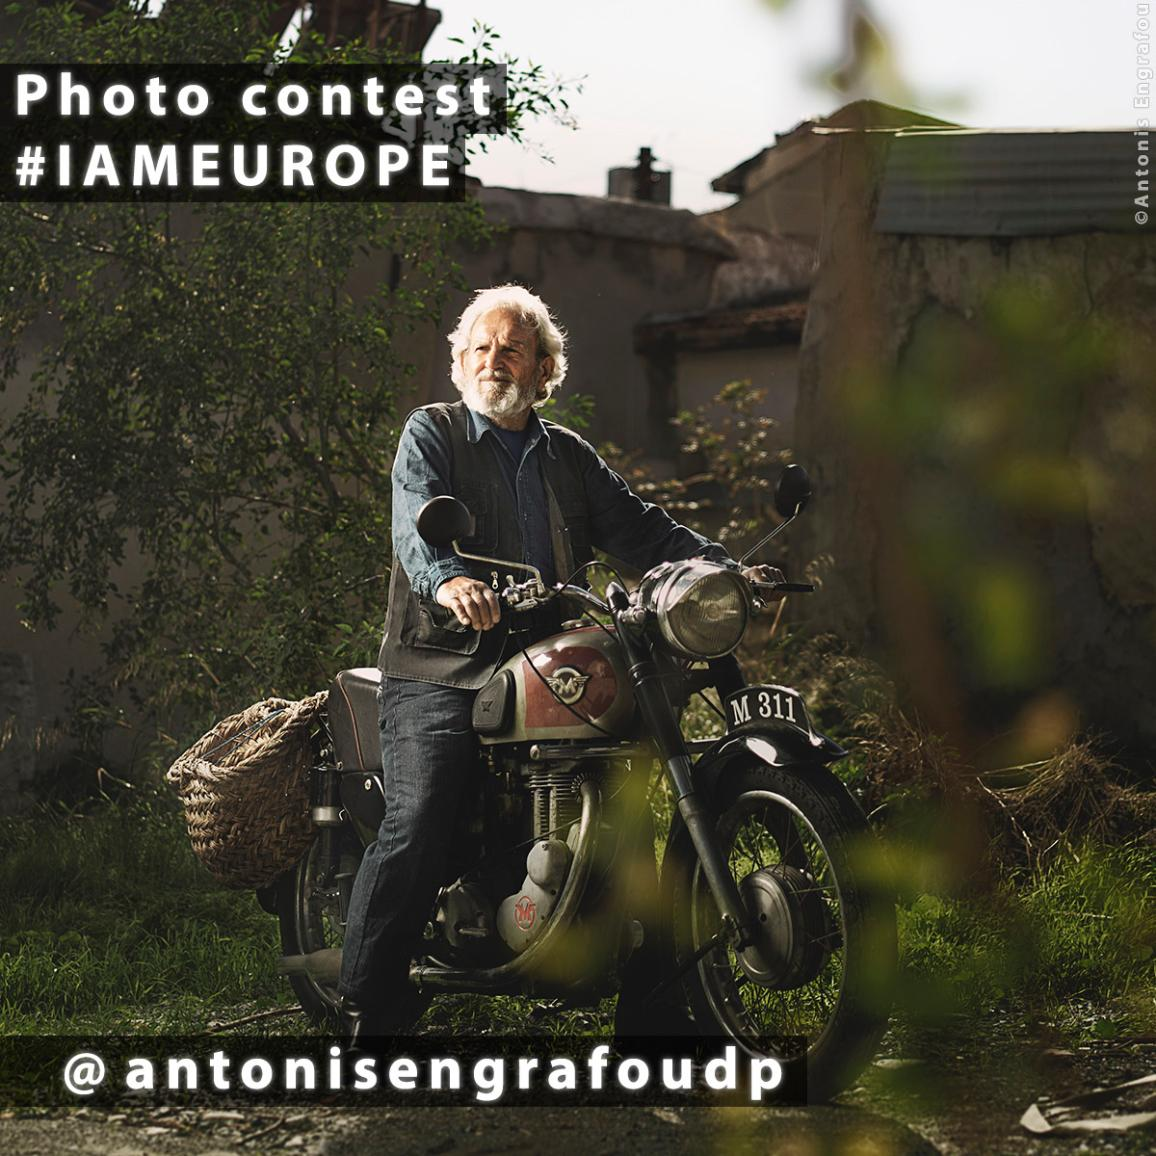 Special thanks to the Cypriots photographer Antonis Engrafou (instagram @antonisengrafoudp) for your photo contest testimonial